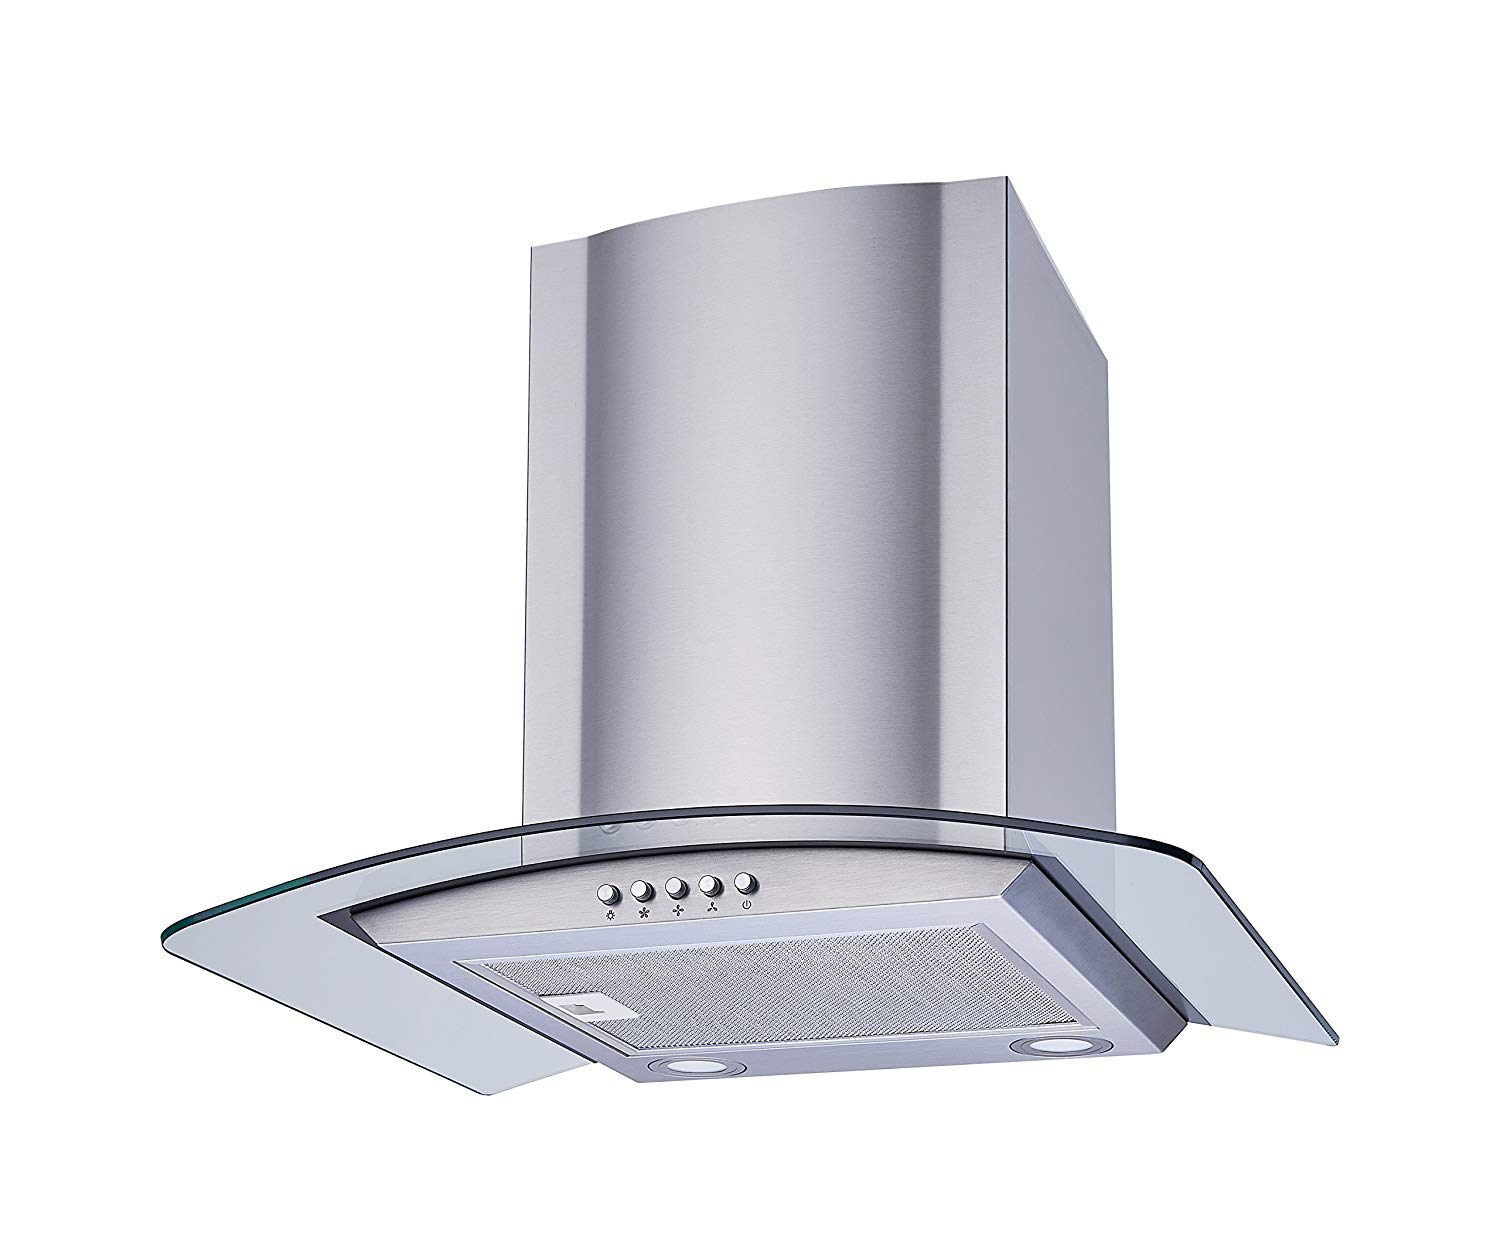 Winflo glass and stainless steel range hood